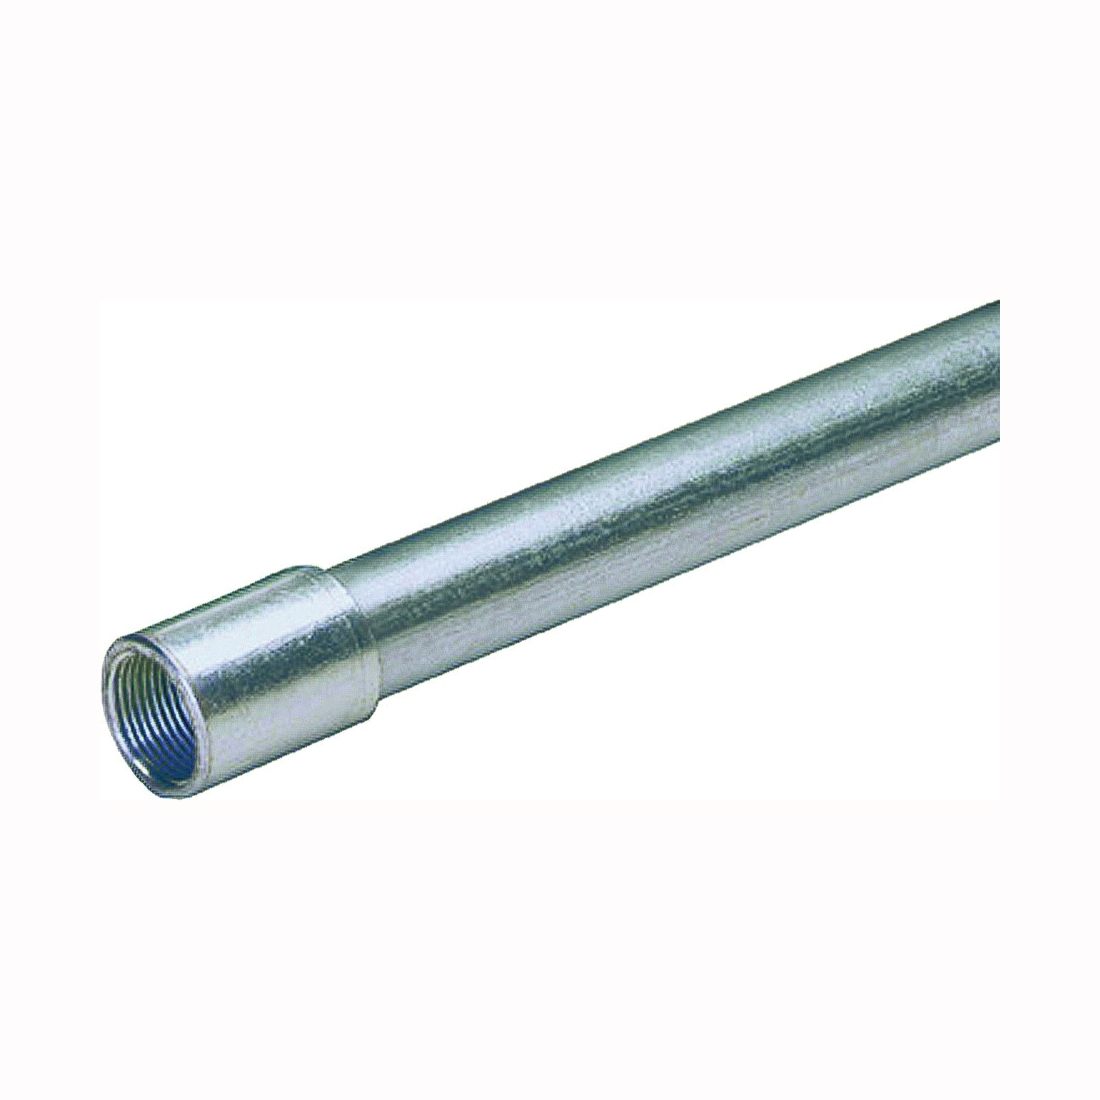 Picture of Allied Tube & Conduit 103051 Rigid Conduit, 0.84 in OD, 10 ft L, 1/2 in Trade, Galvanized Steel